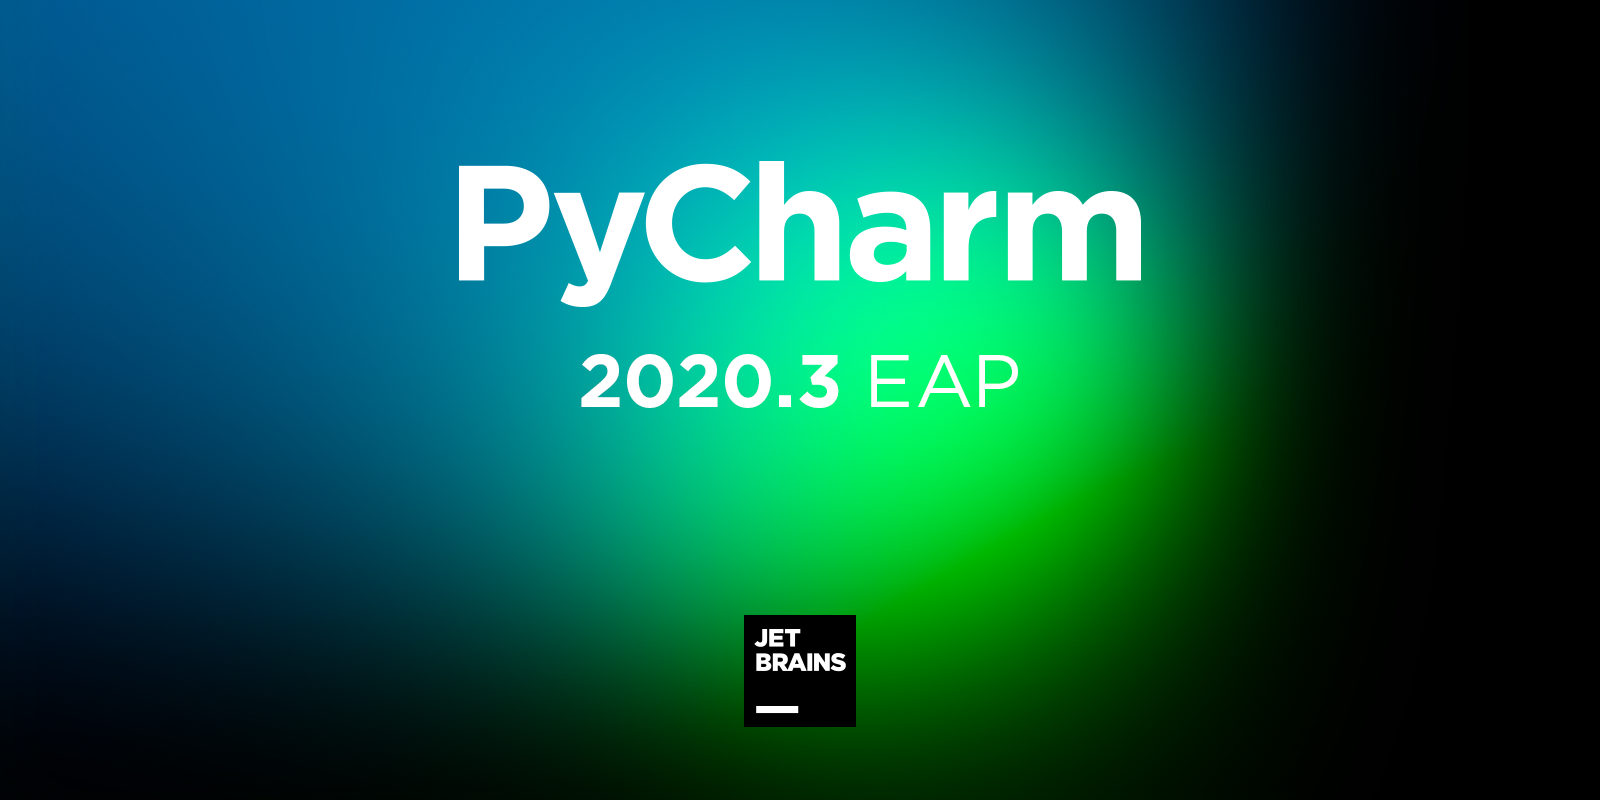 PyCharm: PyCharm 2020.3 EAP #4: Pair Programming, Intelligent Text Proofreading, and More